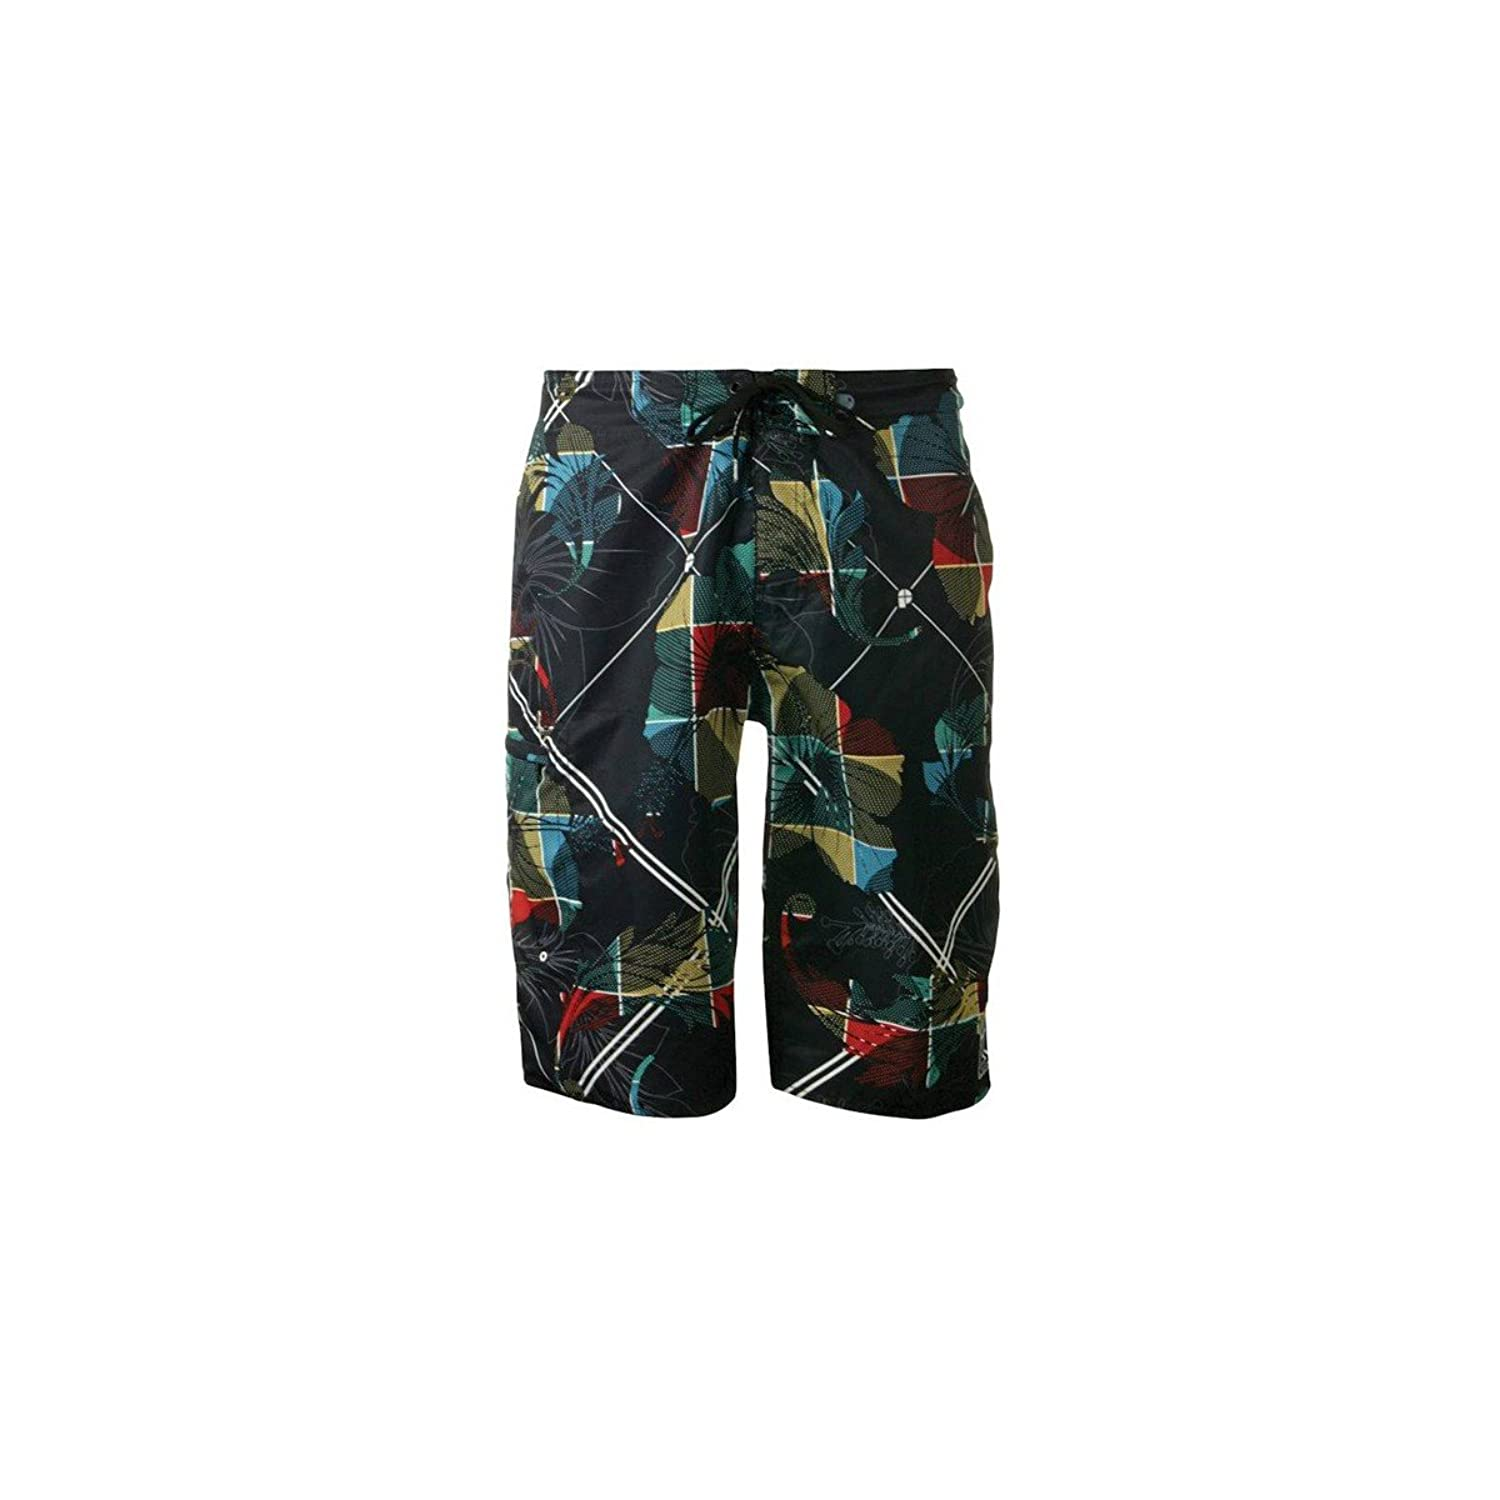 Protest Brading Board Shorts Multi-Coloured